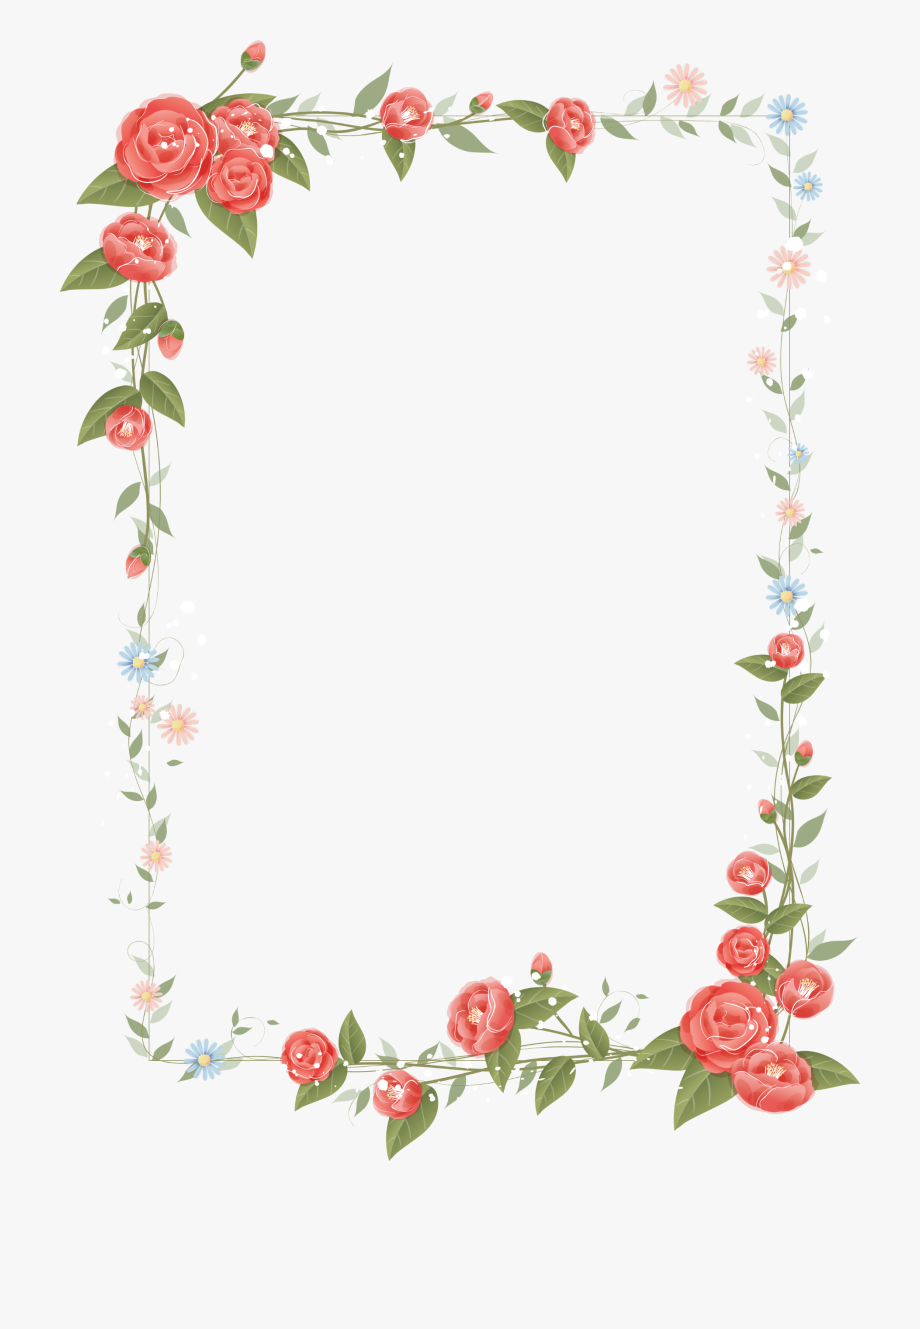 Rose Frame Design Floral Flowers Border Clipart Border Flower